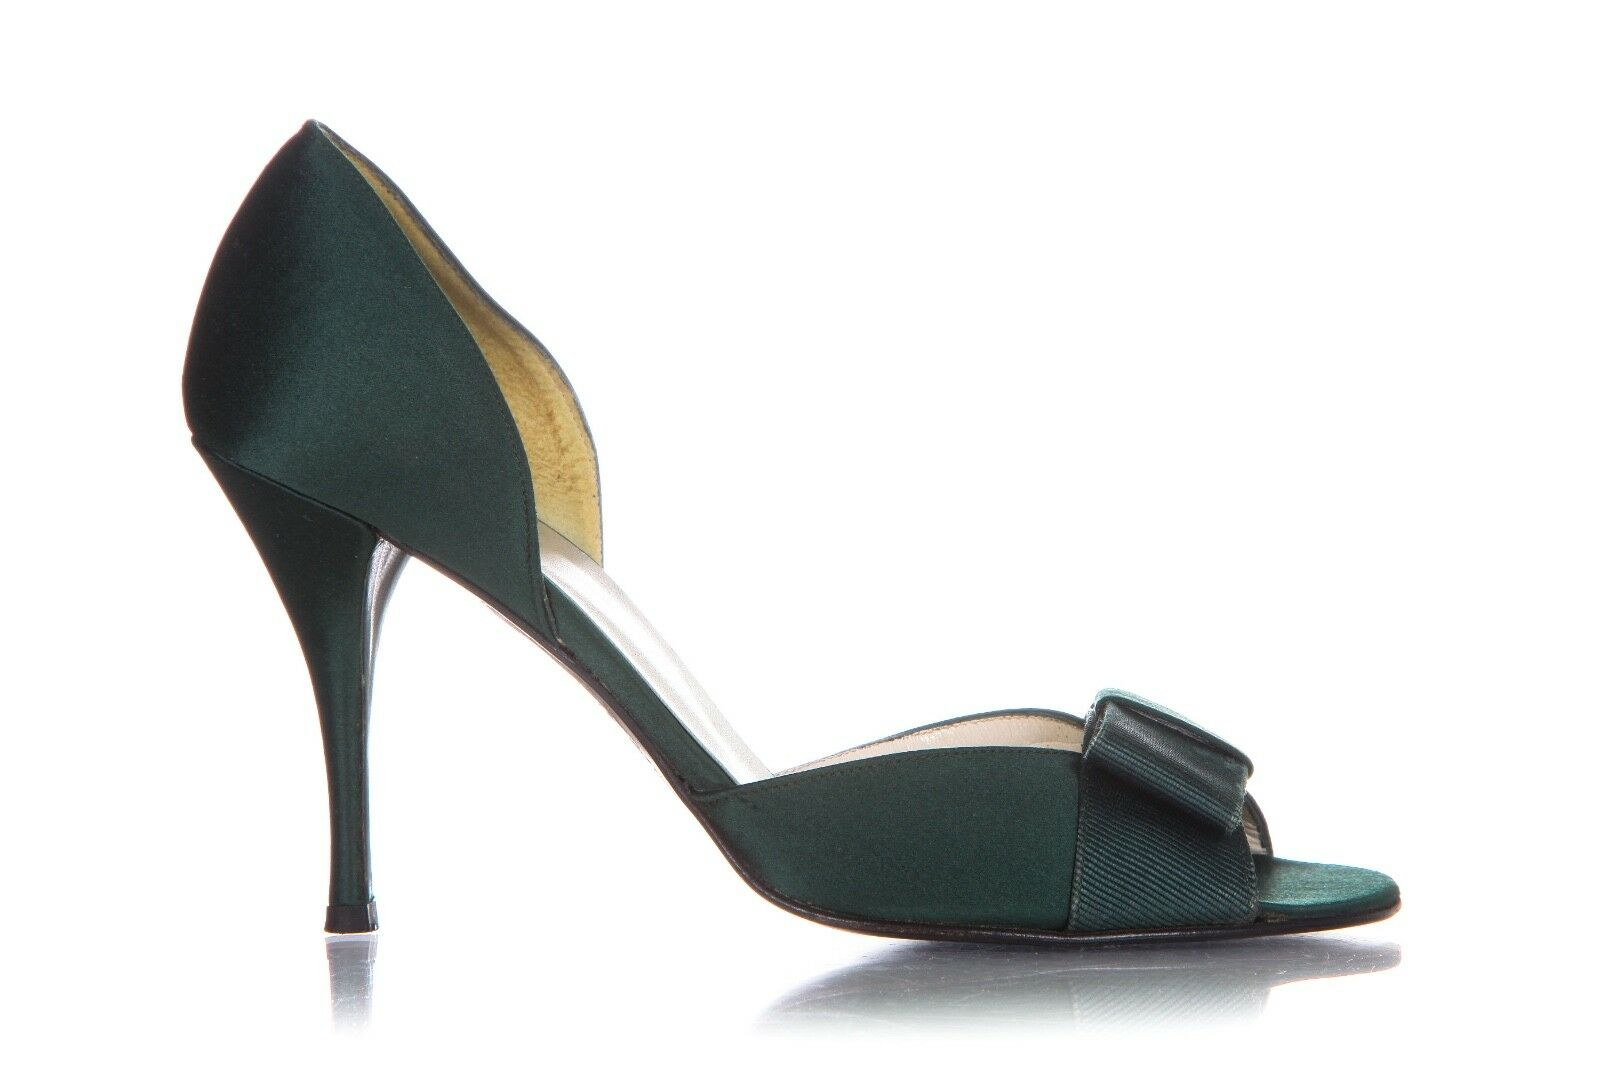 STUART WEITZMAN Heels 8.5 vert Satin Pumps Bow Peep Open Toe Sandals